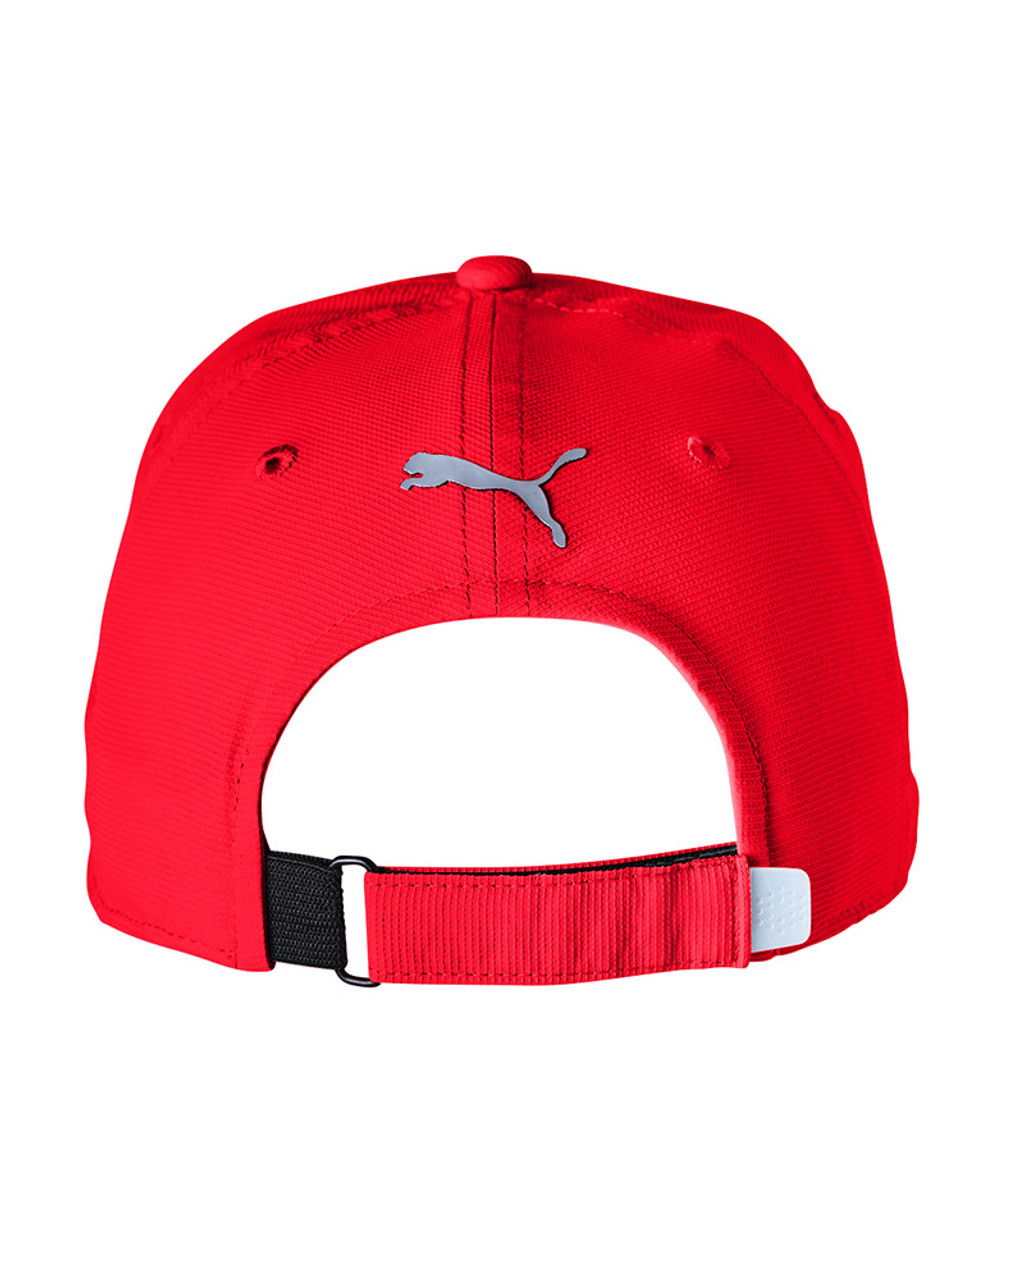 High Risk Red - back, 22673 Puma Golf Adult Pounce Adjustable Cap | Hardgoods.ca